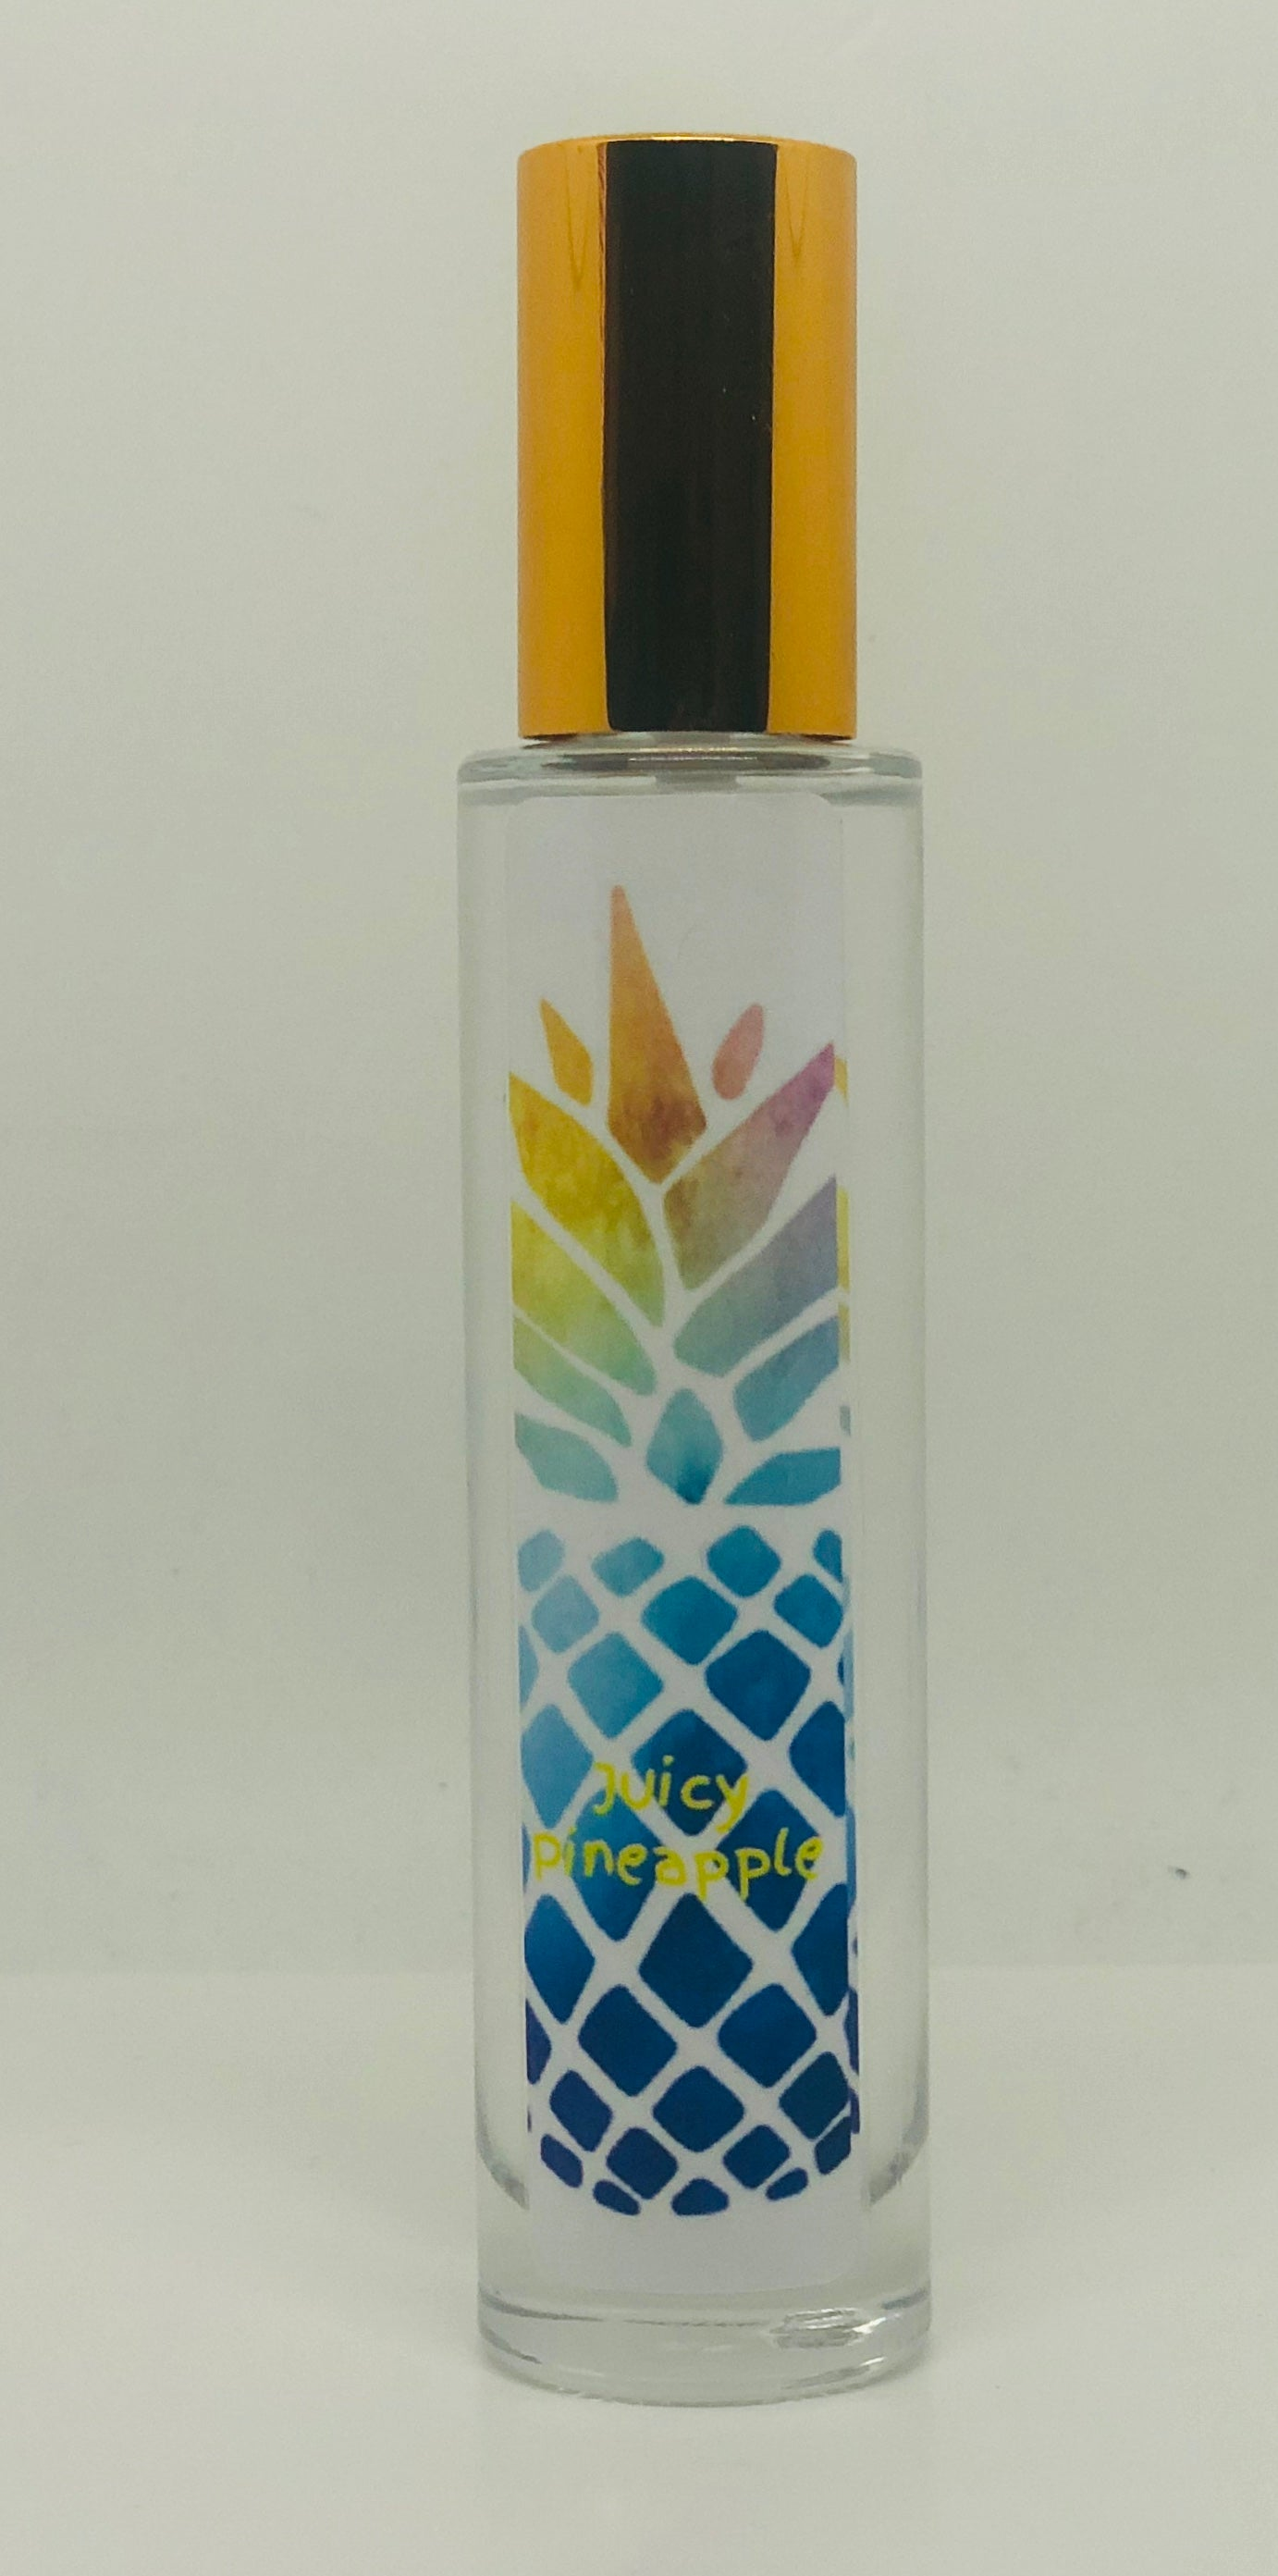 Juicy Pineapple Handmade Eau de Parfum Spray